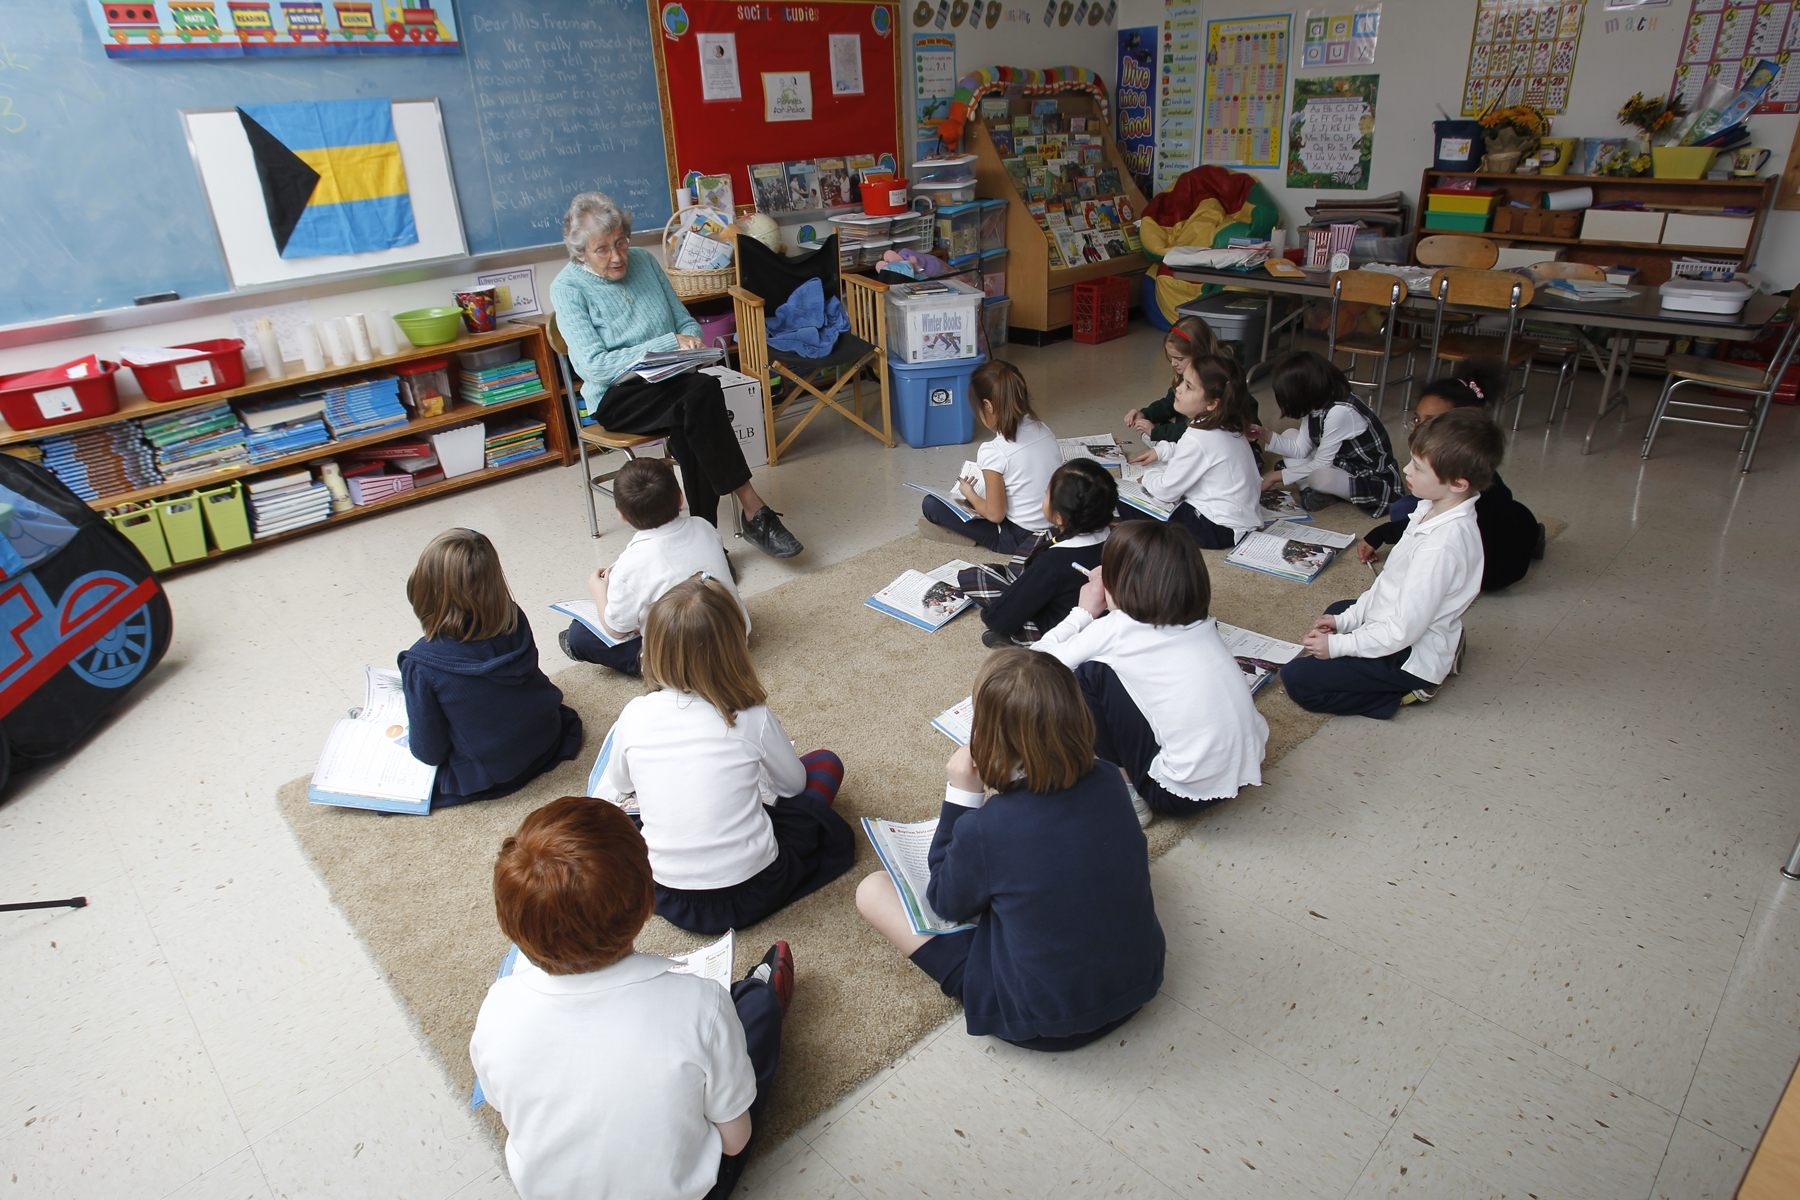 Luella Potter teaching a class at Southern Tier Catholic School.